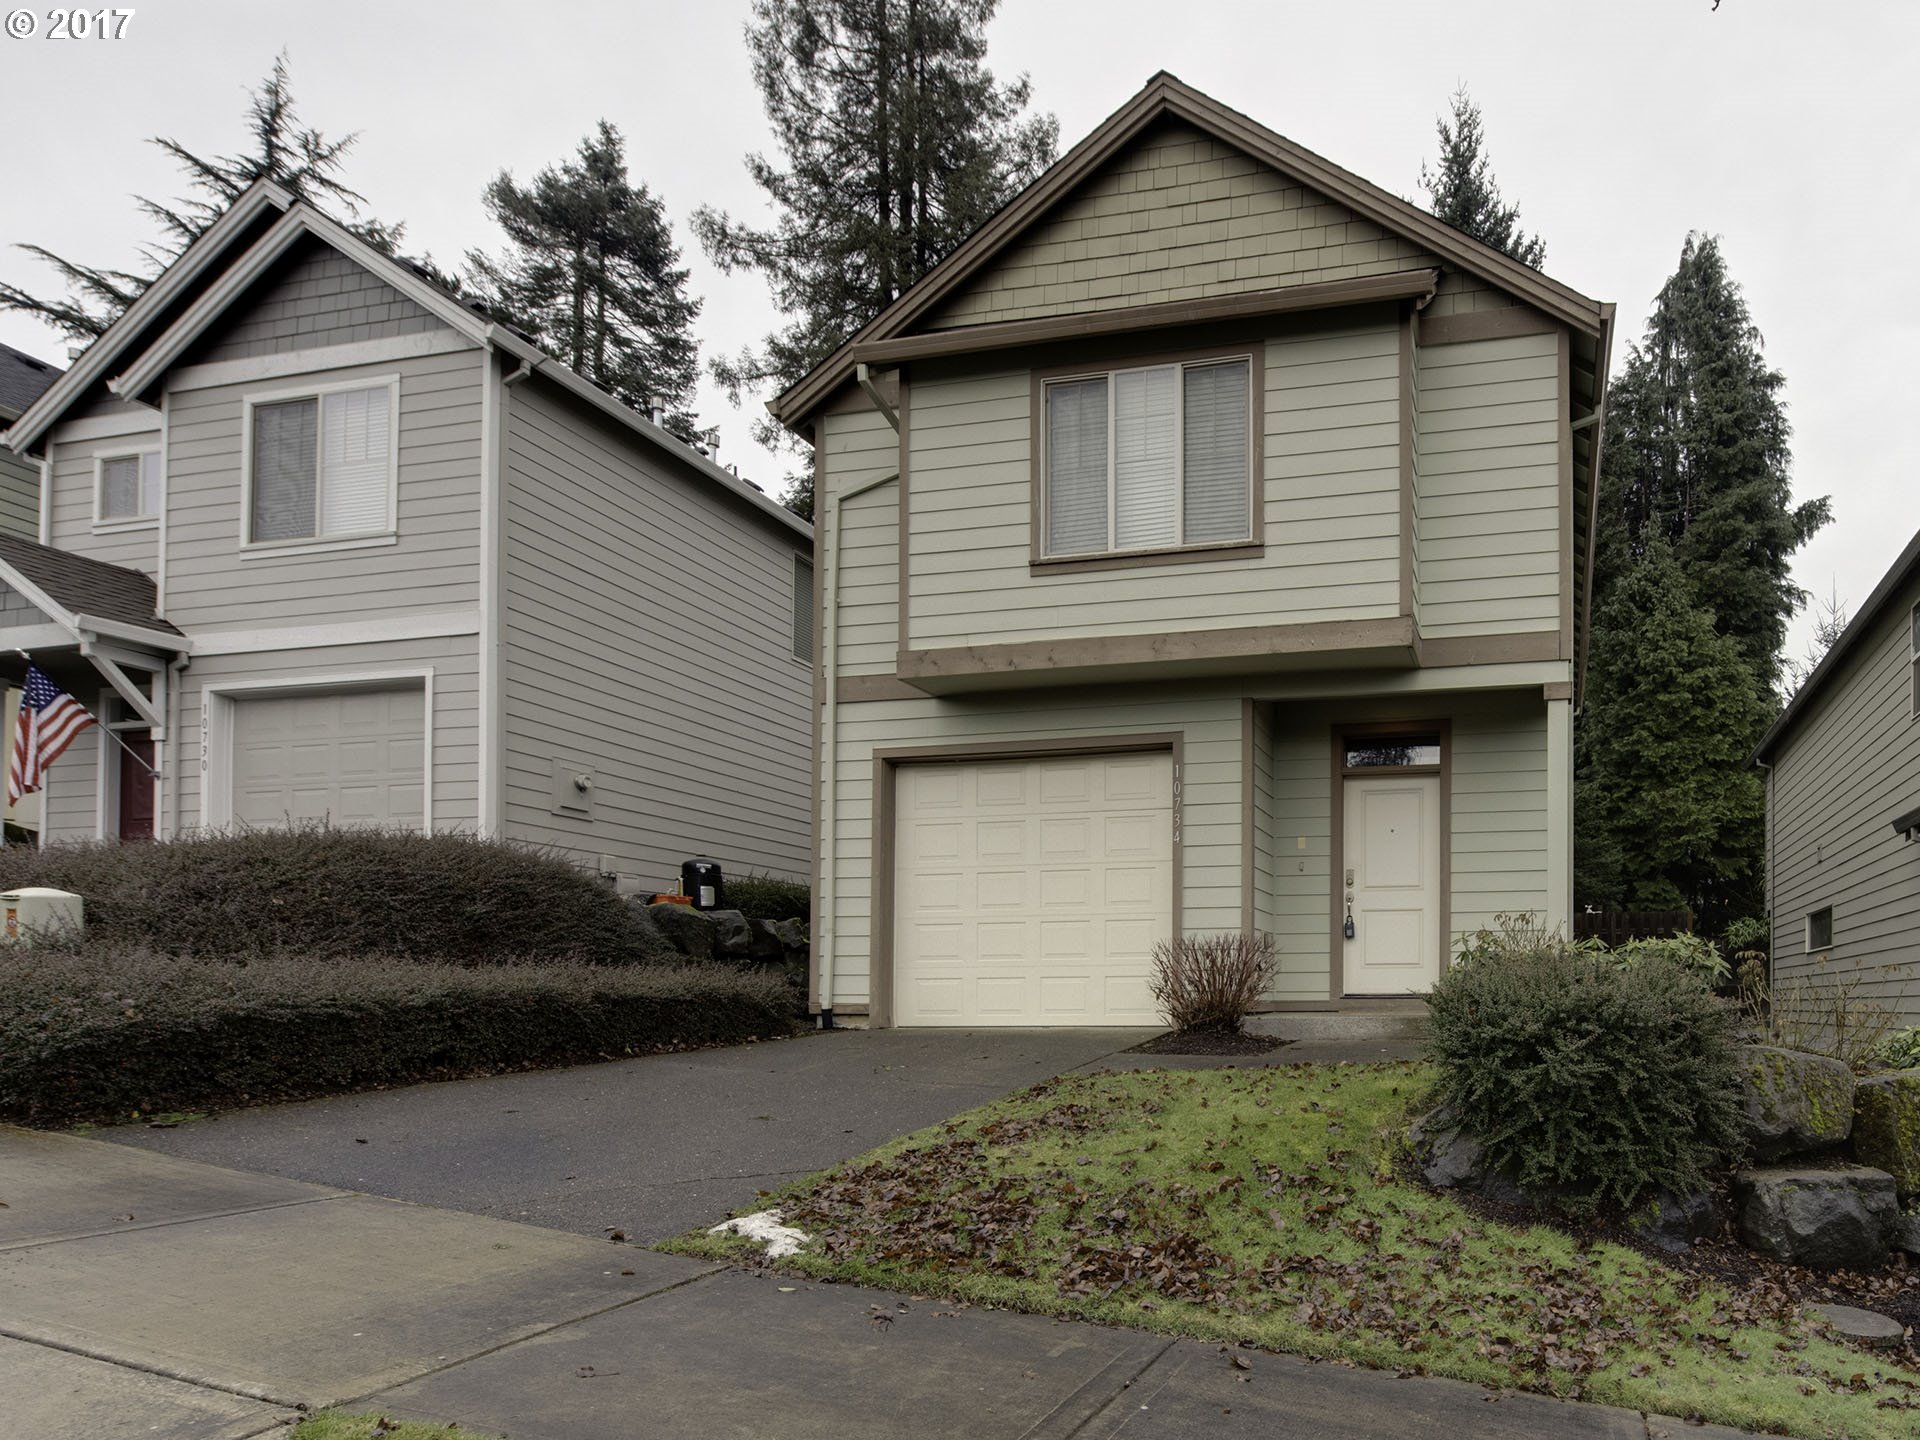 10734 SE 75TH AVE, Milwaukie OR 97222